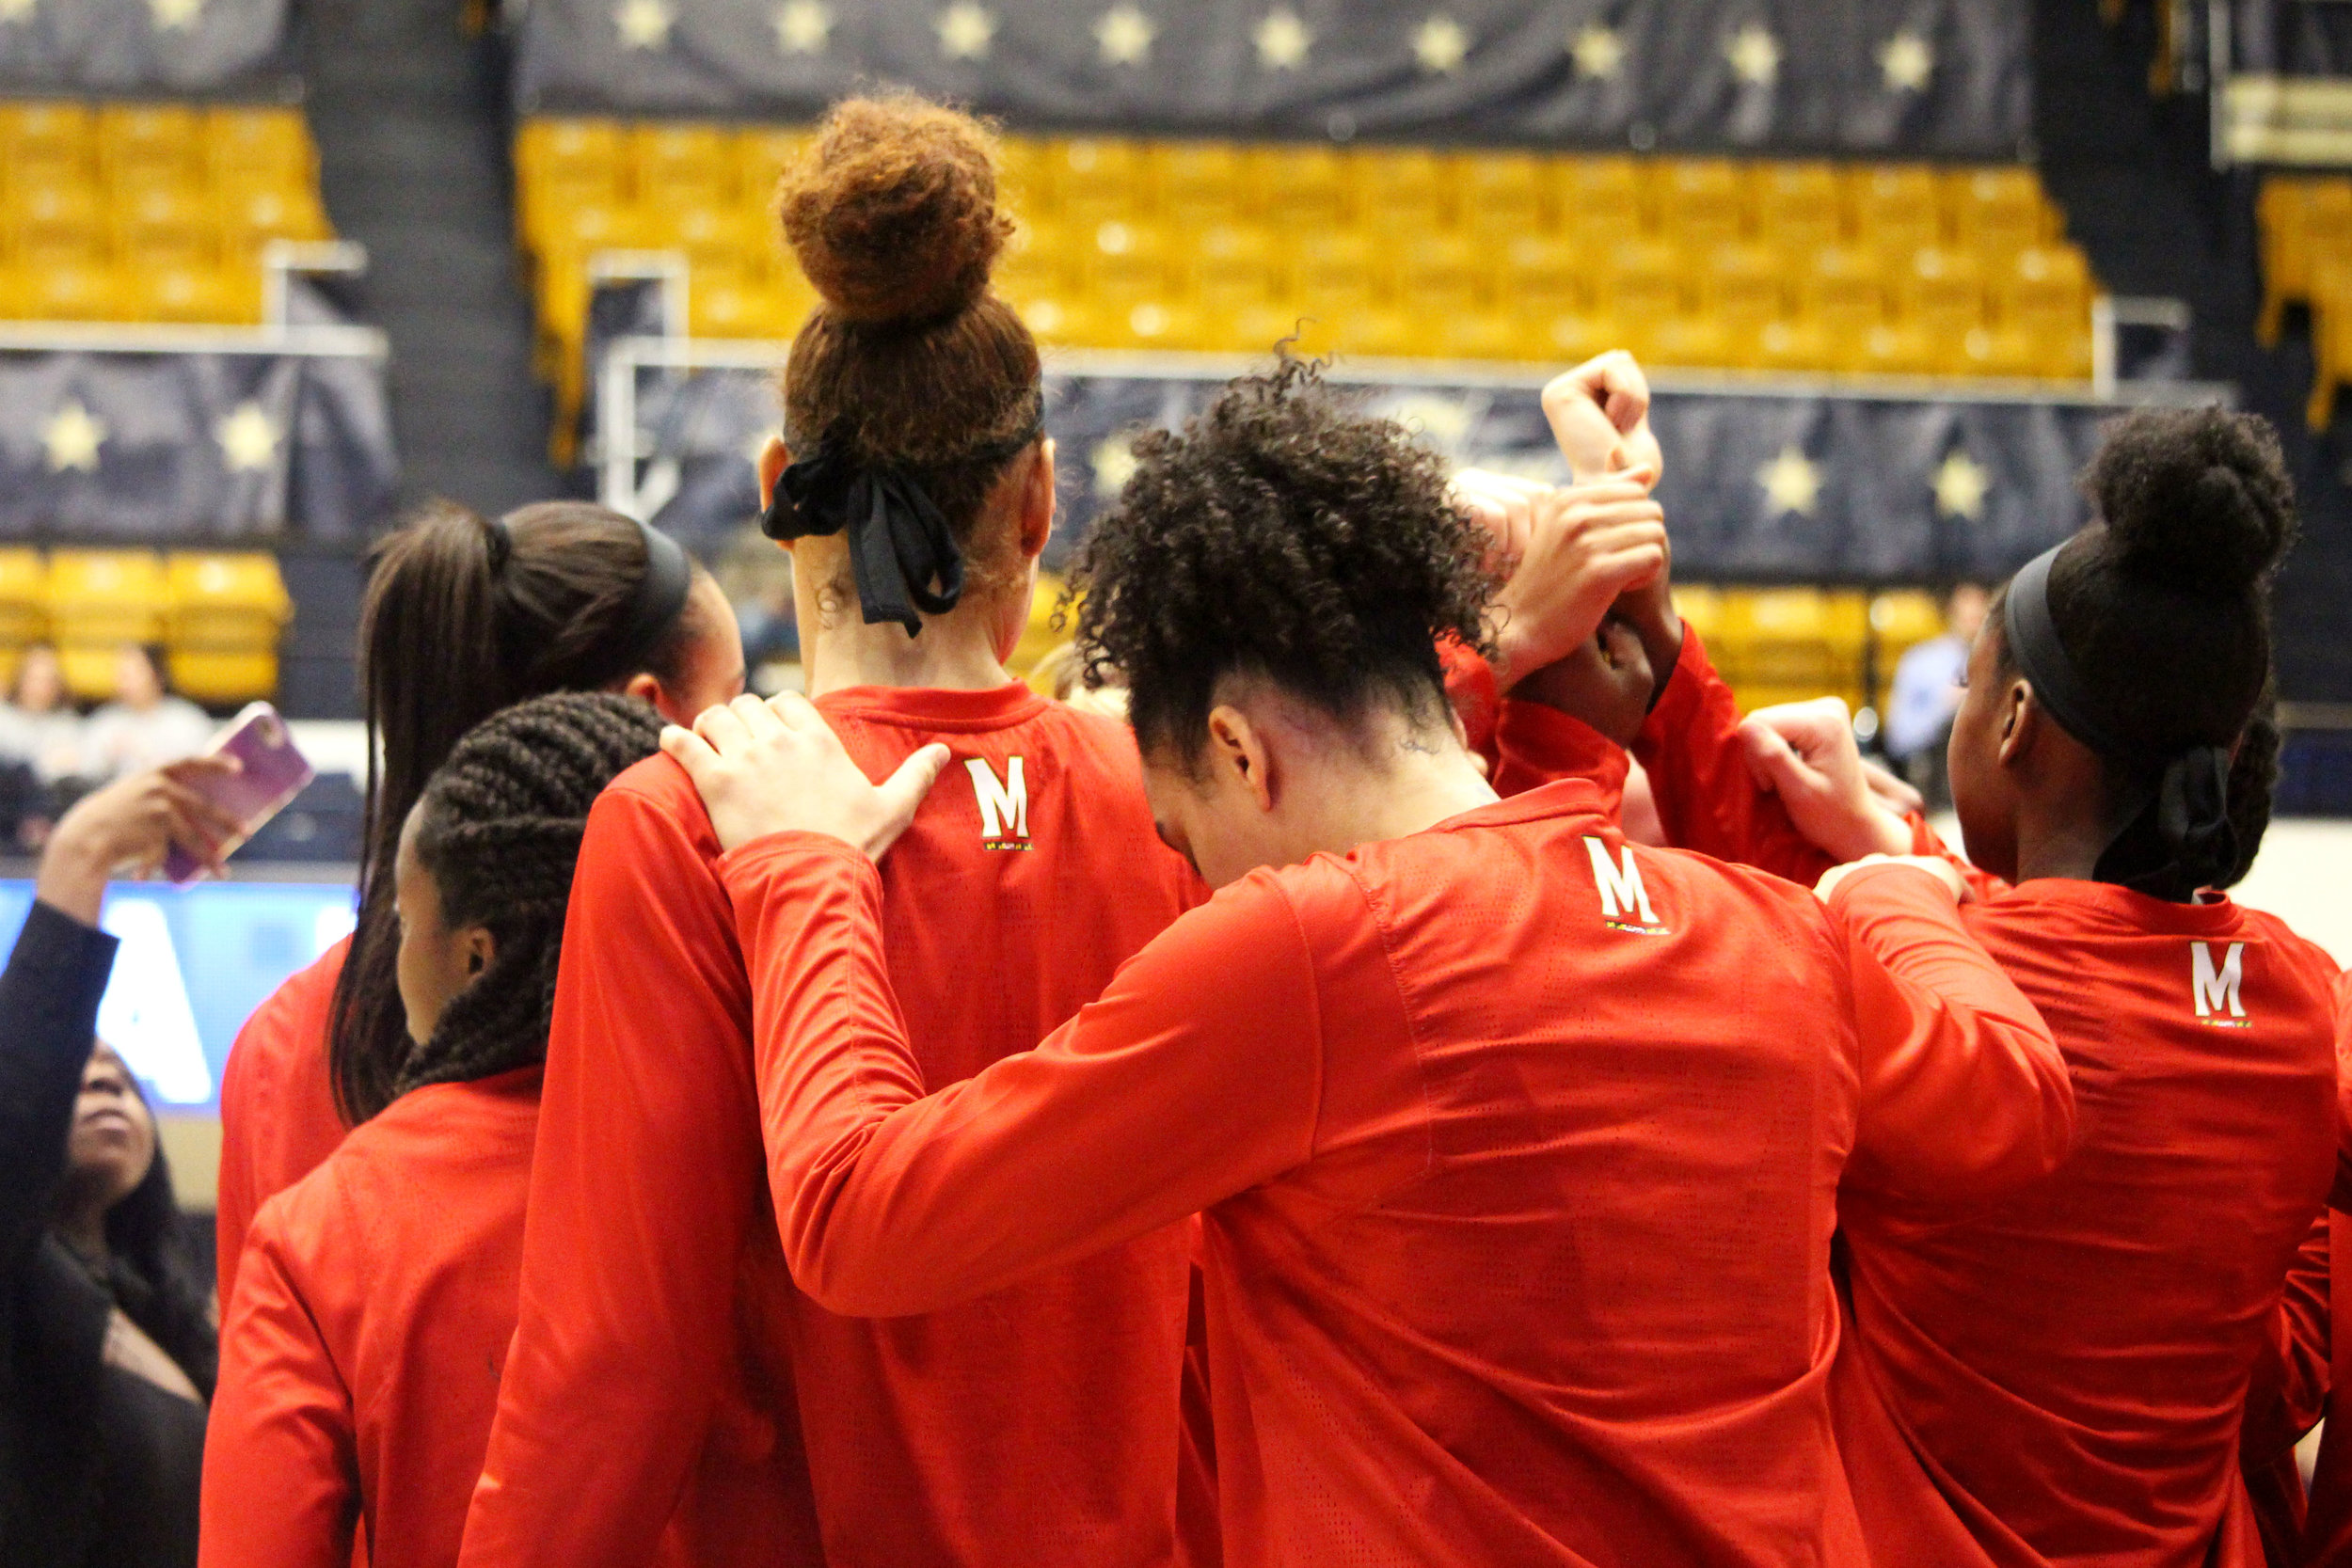 The Maryland women's basketball team assembles together in a tight huddle on the court after warming up for their evening matchup against George Washington at the Charles E. Smith Center in Washington on Wednesday, Nov. 14, 2018. The Terps won 69-30. (Alexandra Glover/The Black Explosion)